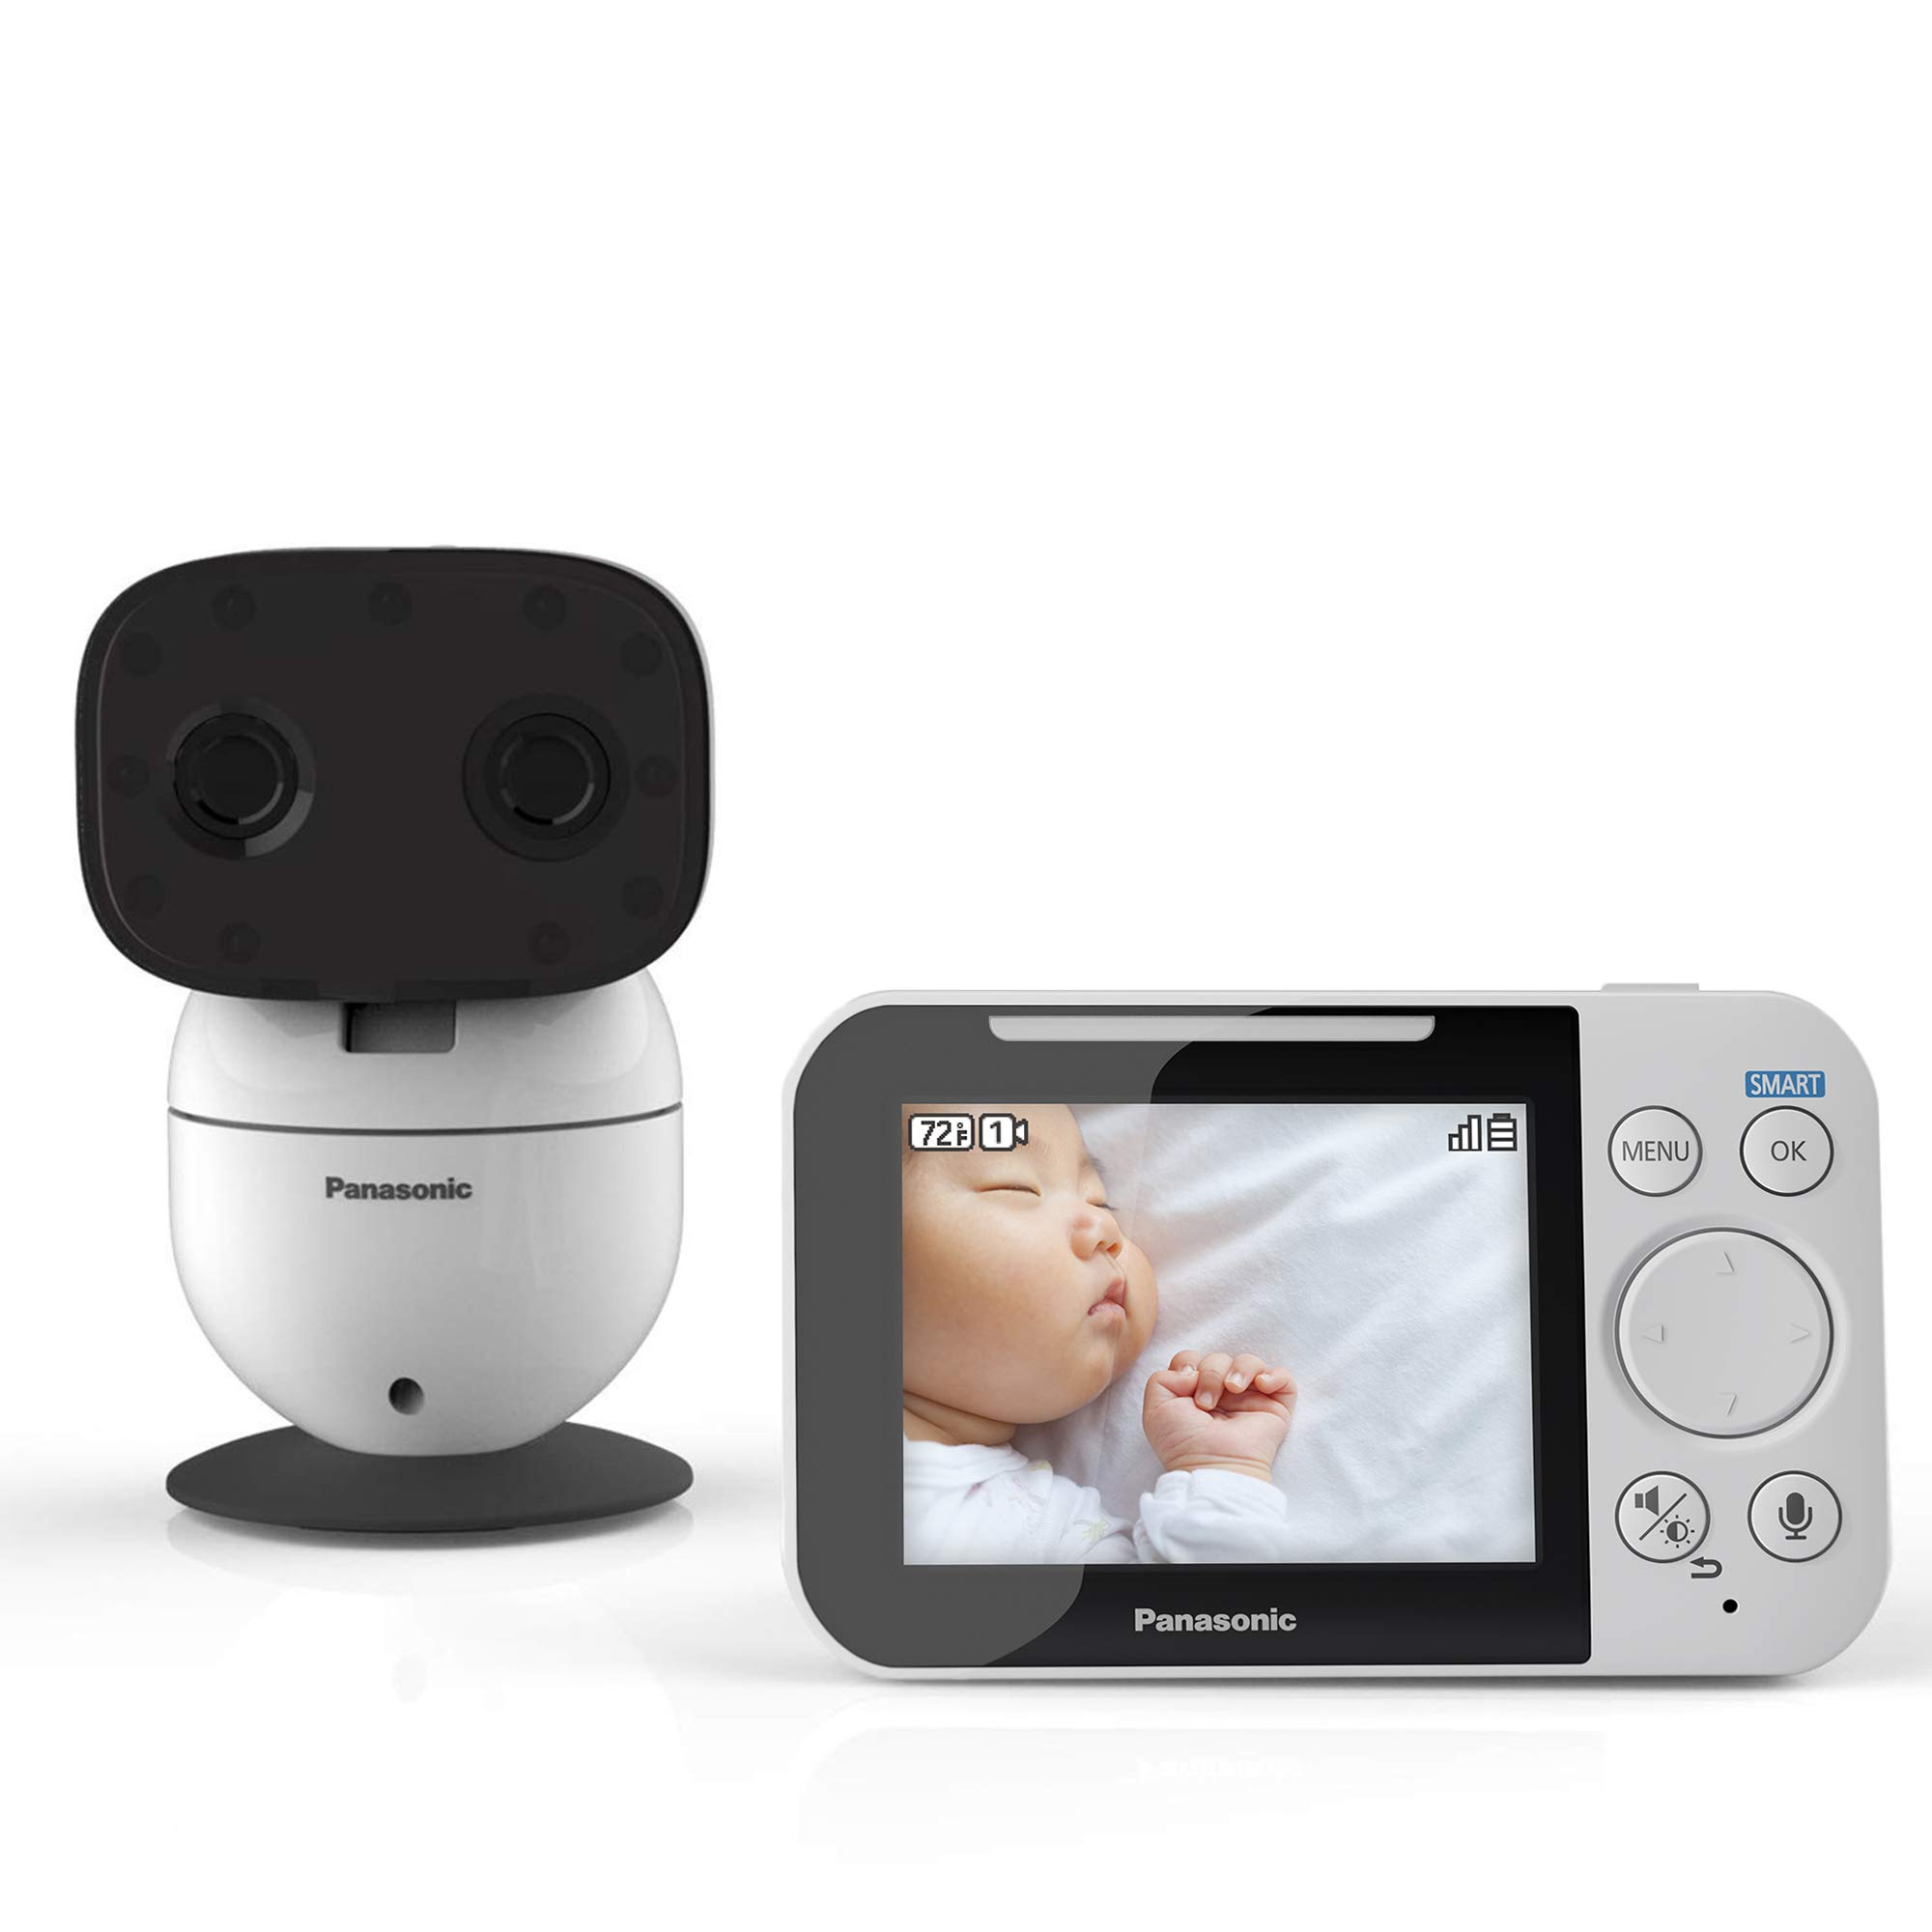 Panasonic Video Baby Monitor with Remote Pan/Tilt/Zoom, Extra Long Audio/Video Range, 2 Way Talk & Lullaby or Noises - KX-HN3001W (White)